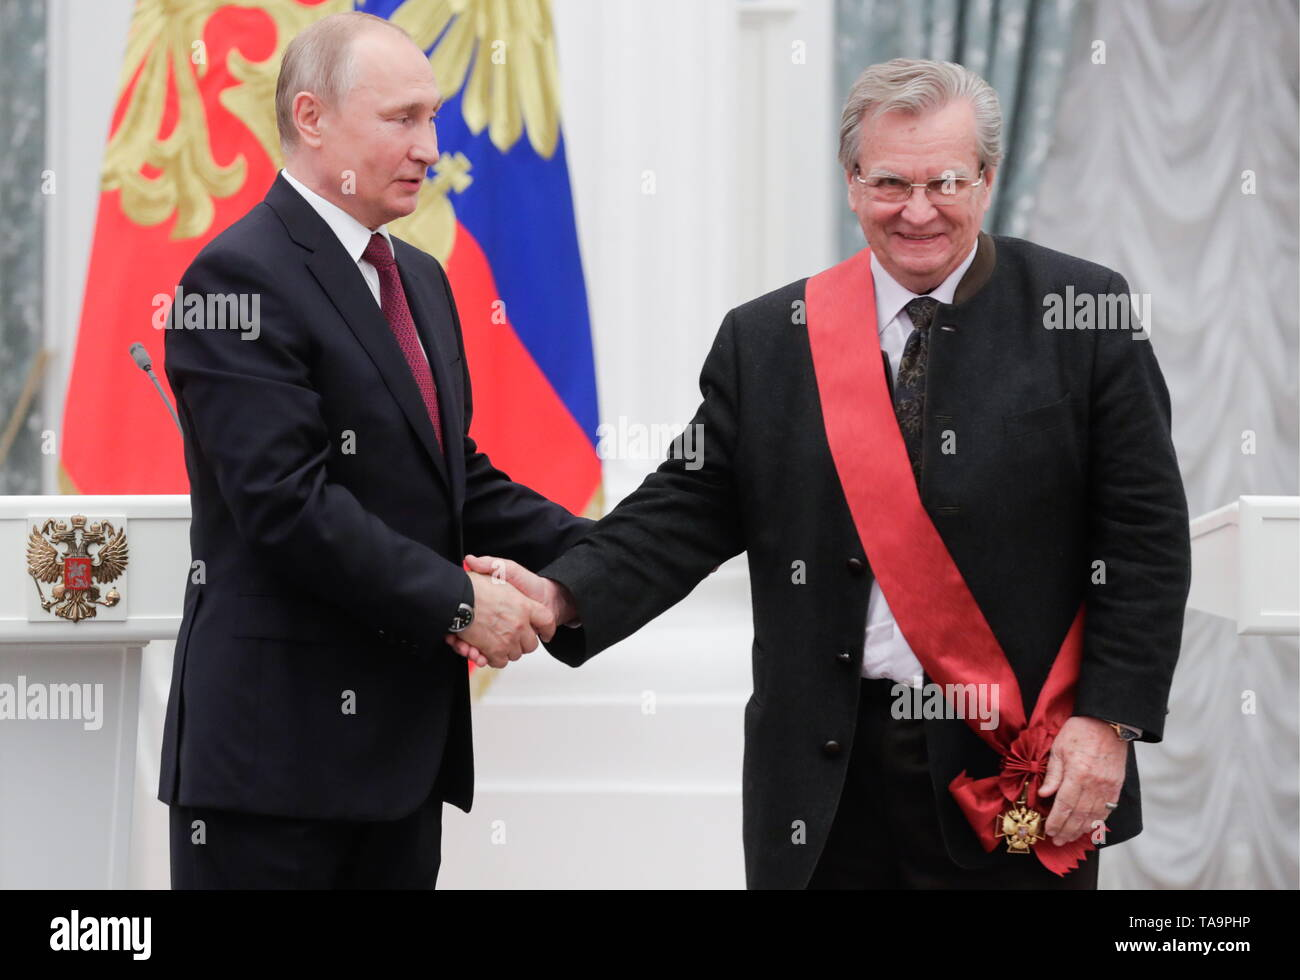 Moscow, Russia. 23rd May, 2019. MOSCOW, RUSSIA - MAY 23, 2019: Russia's President Vladimir Putin (L) and Russian conductor Vladimir Fedoseyev, artistic director of the Tchaikovsky Symphony Orchestra, awarded the Order of Merit for the Fatherland (1st class), during a ceremony to present state decorations at Moscow's Kremlin. Mikhail Metzel/TASS Credit: ITAR-TASS News Agency/Alamy Live News - Stock Image